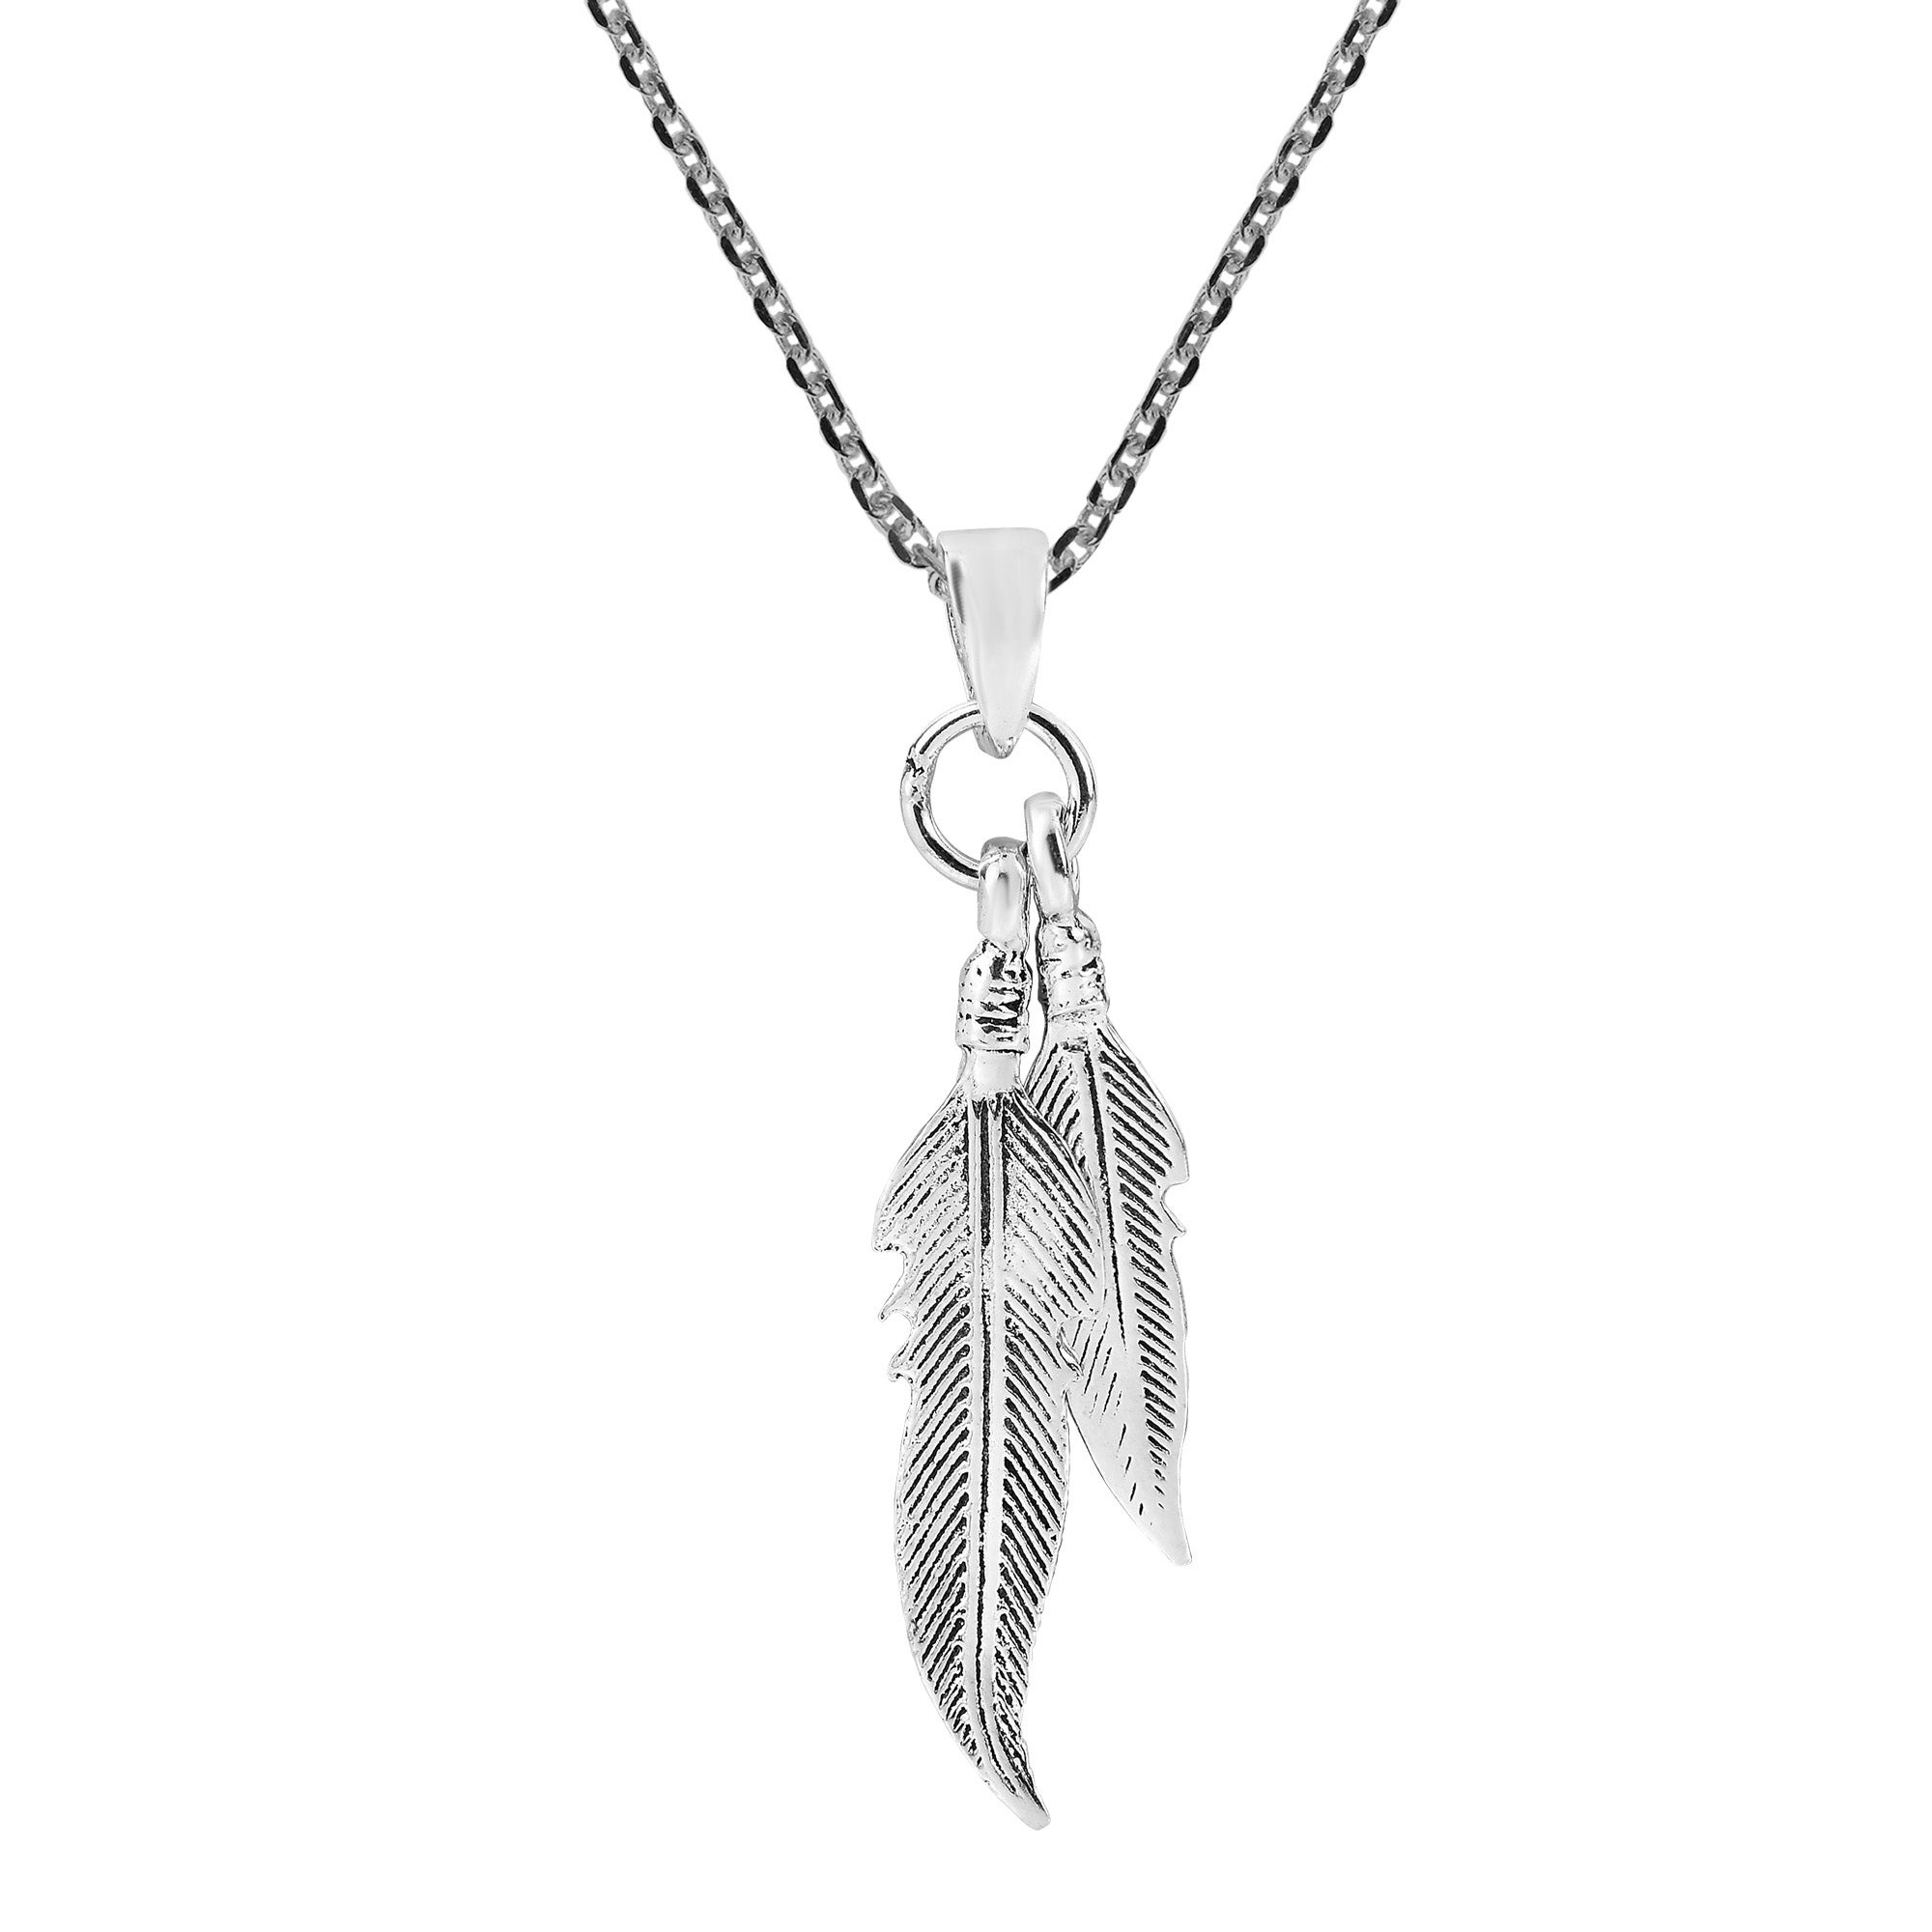 21129 feather necklace,silver feather pendant,sterling silver feather feather charm,boho necklace,everyday necklace,feather jewelry